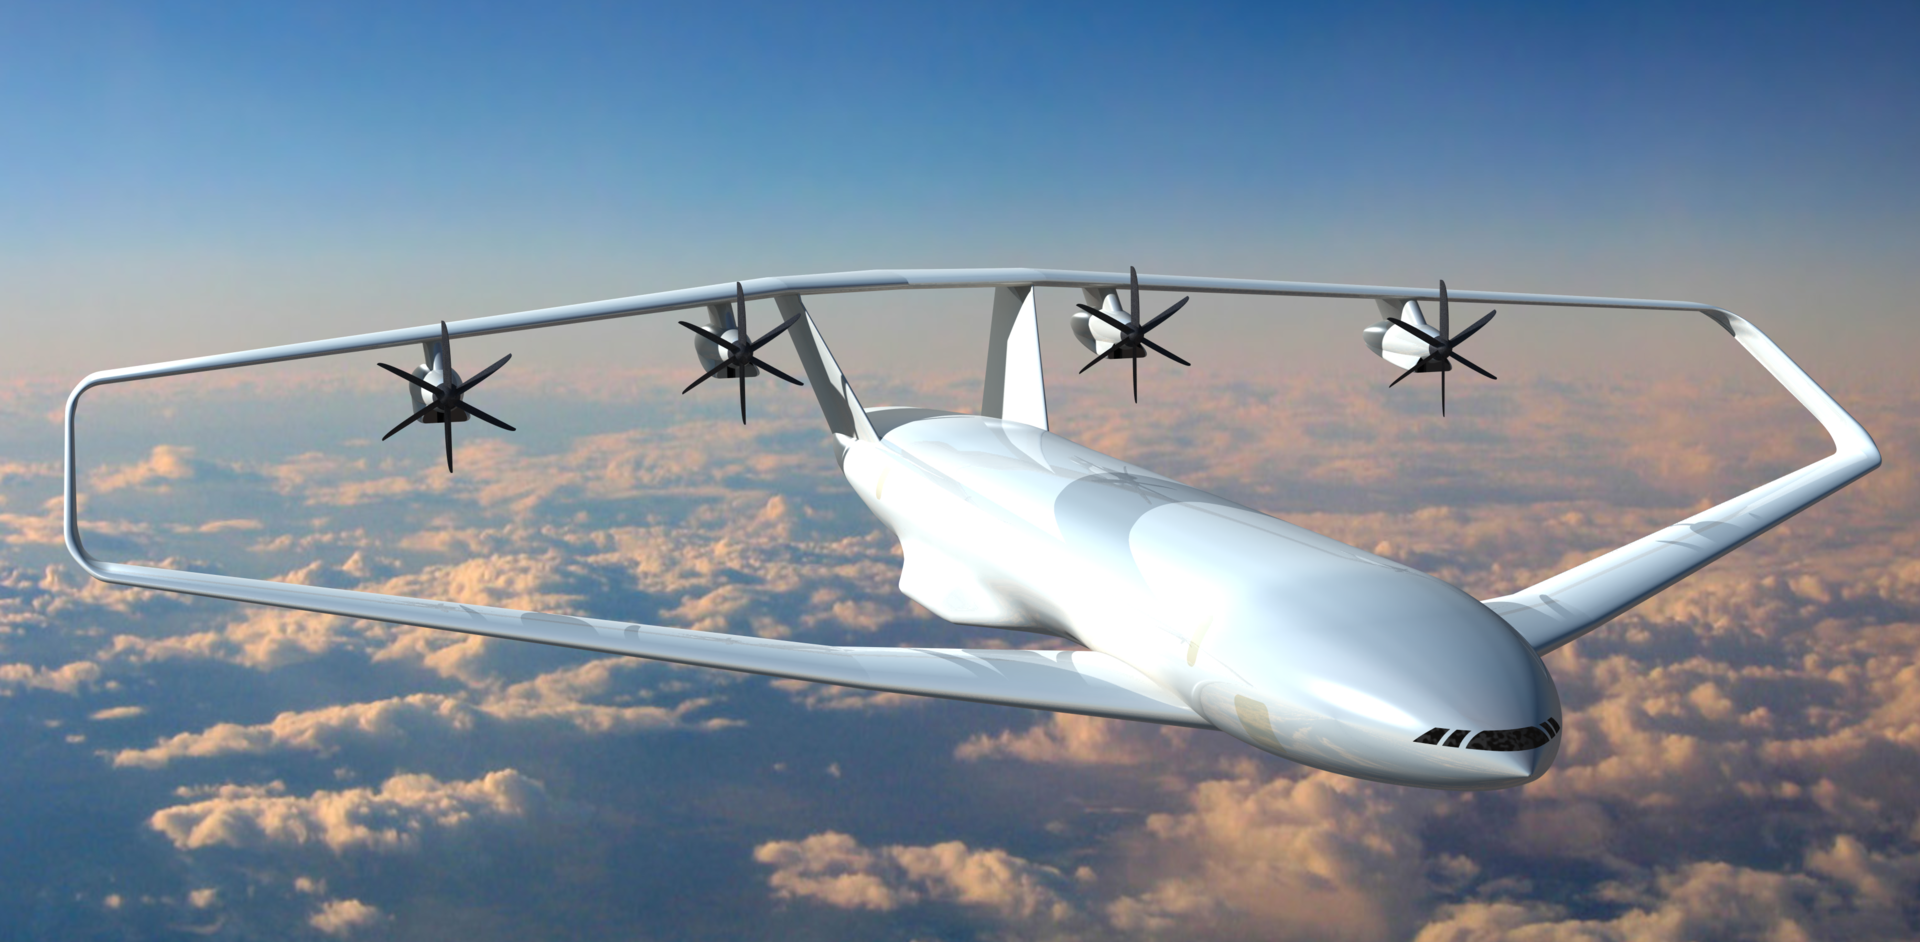 An artist's view of the PrandtlPlane shows what future commercial aircrafts could look like.